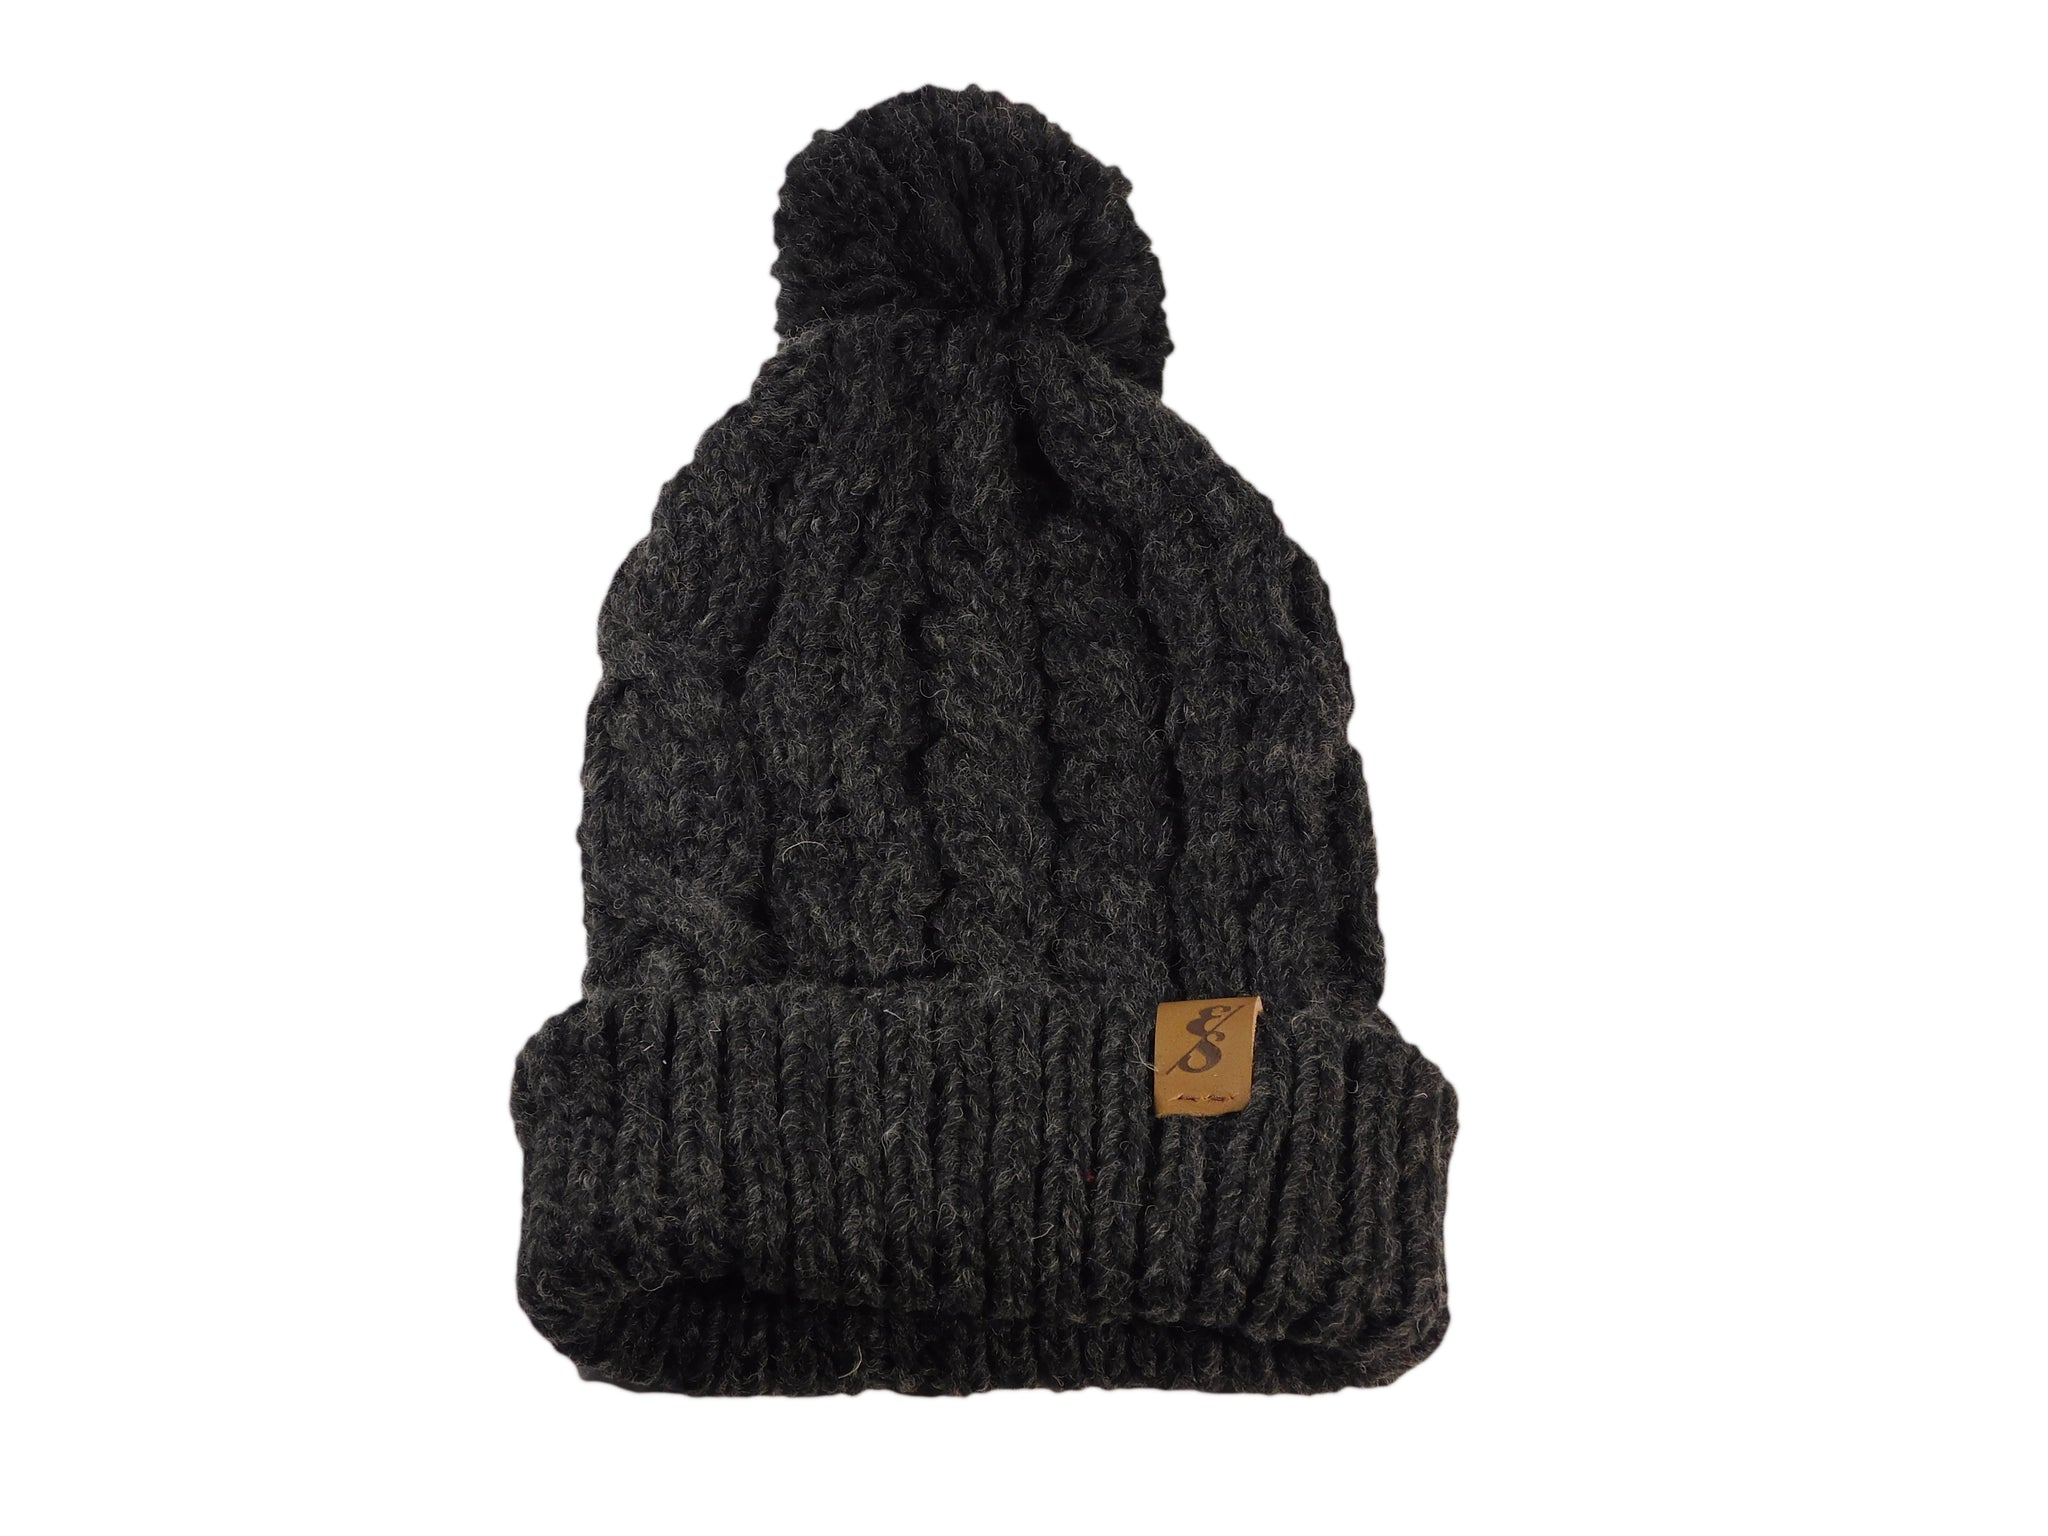 No. 344 Chunky Knit Wool Beanie With Pom